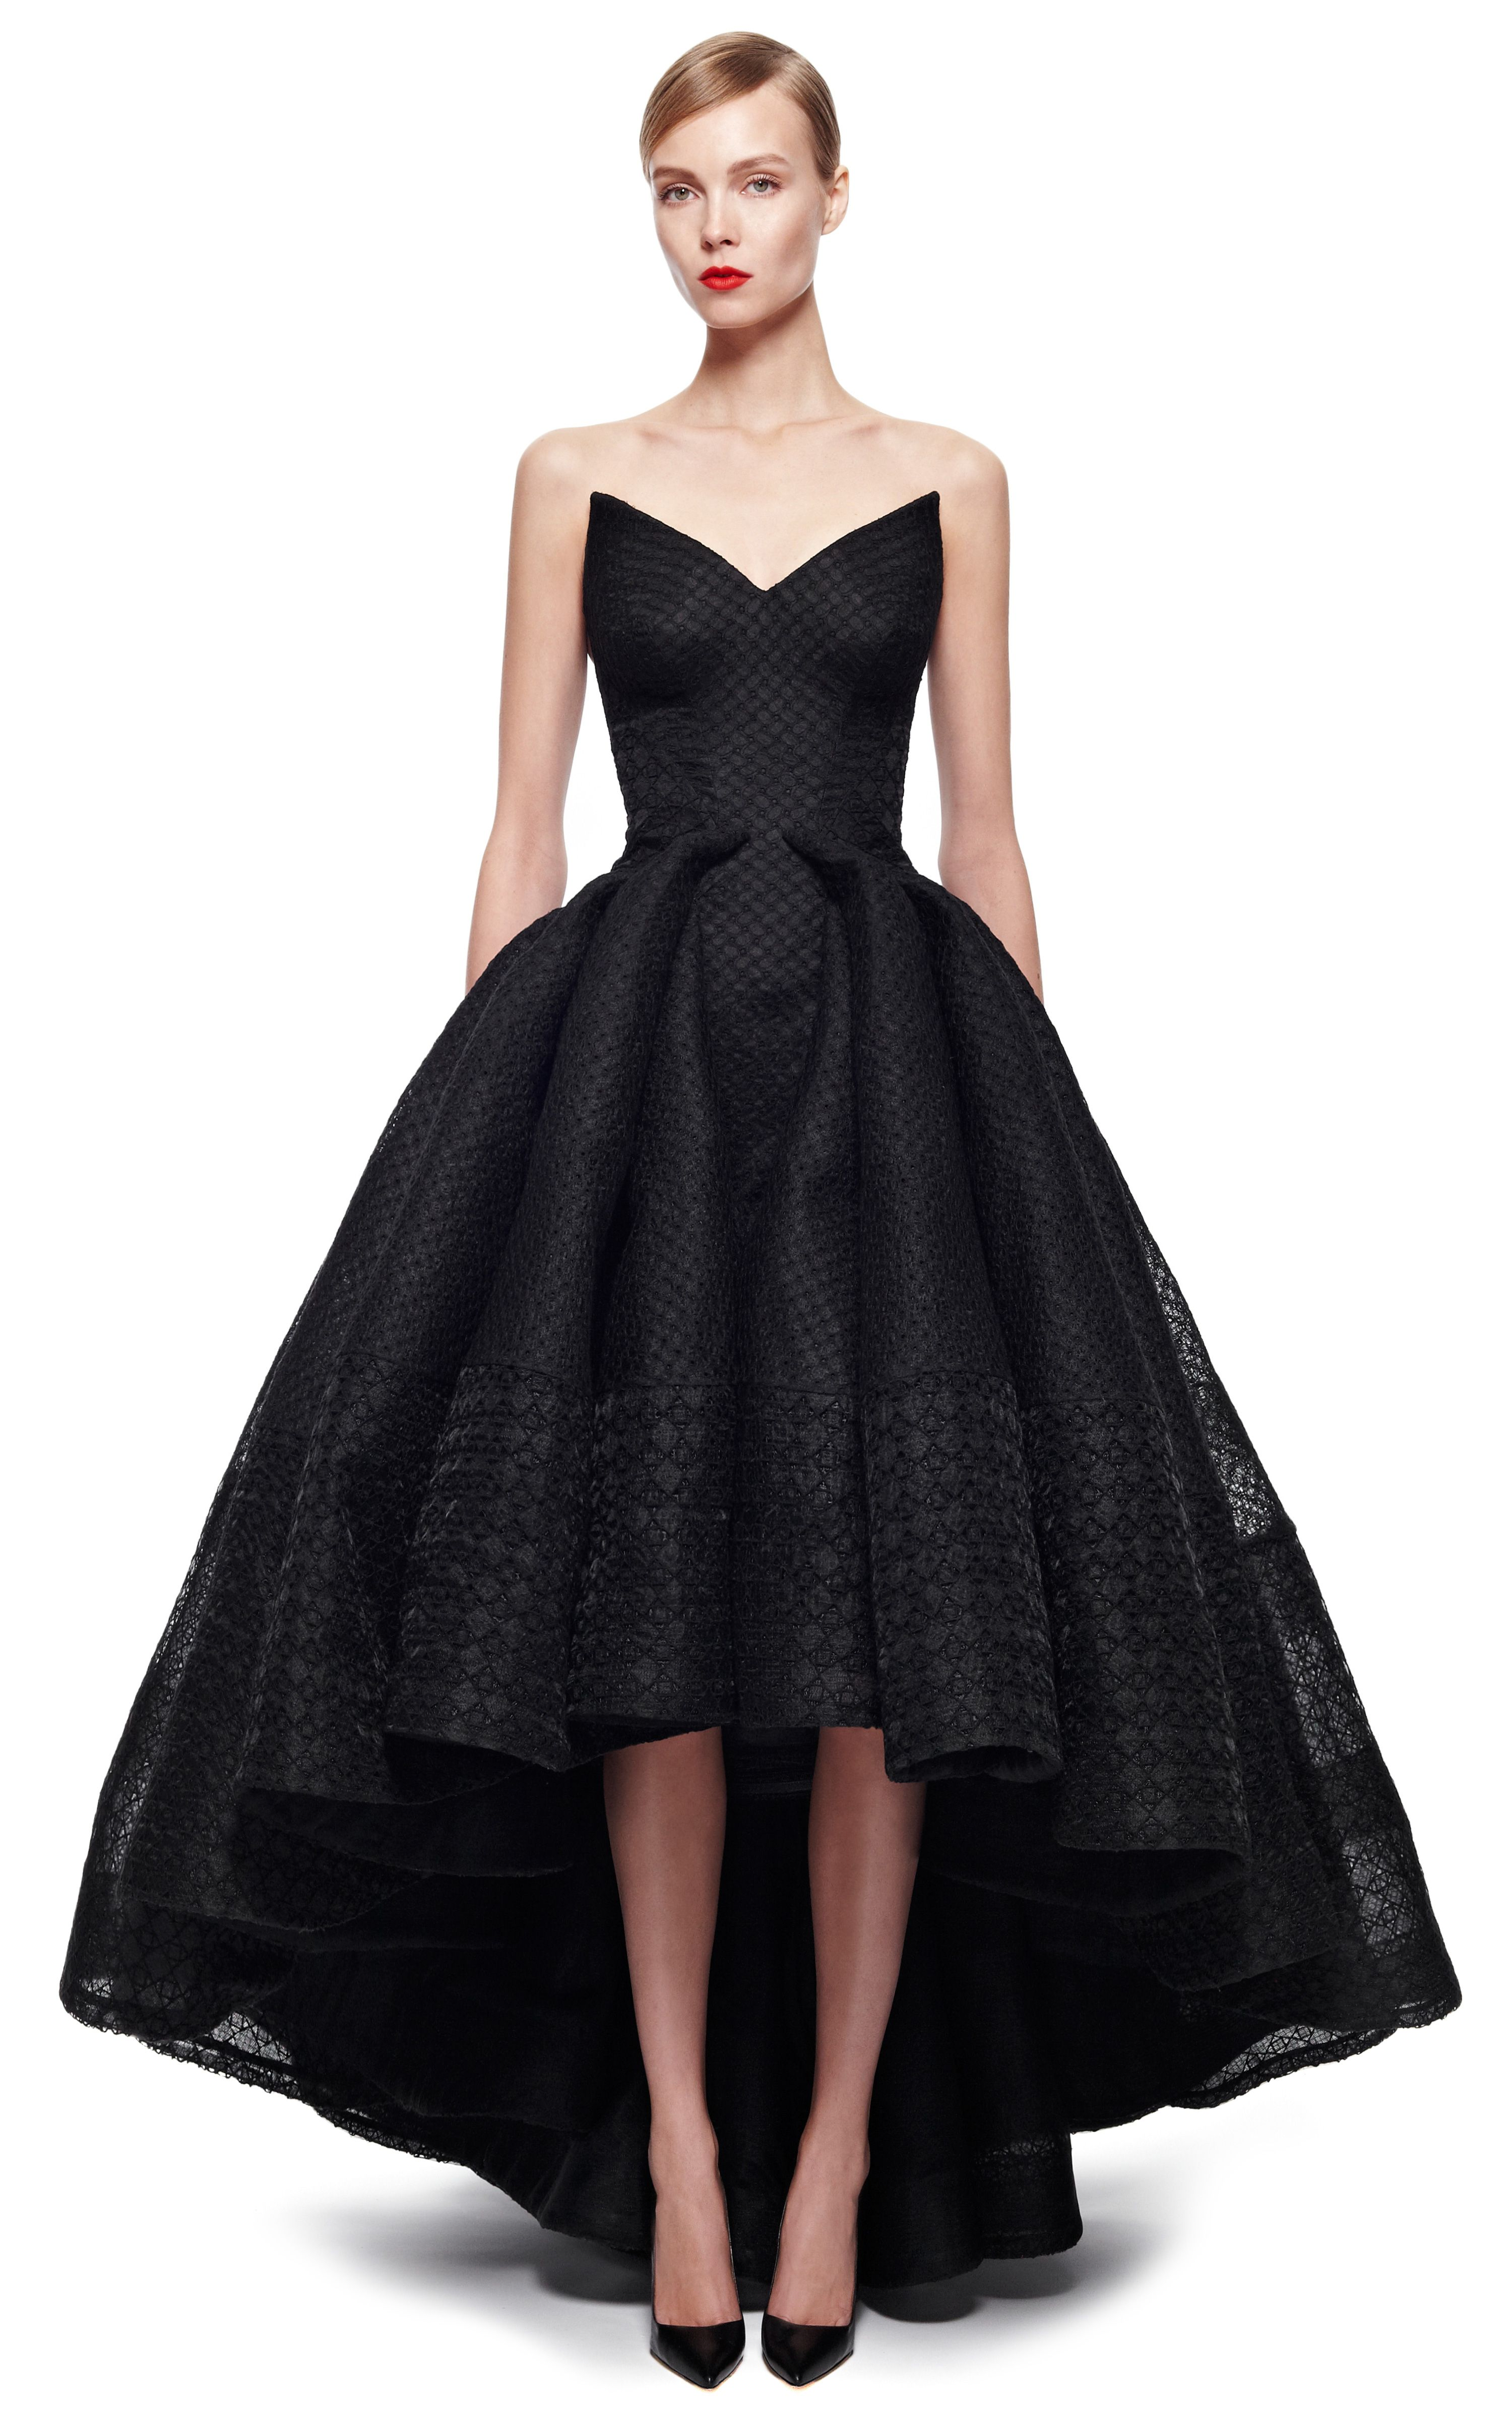 Zac Posen Gowns On Sale_Other dresses_dressesss